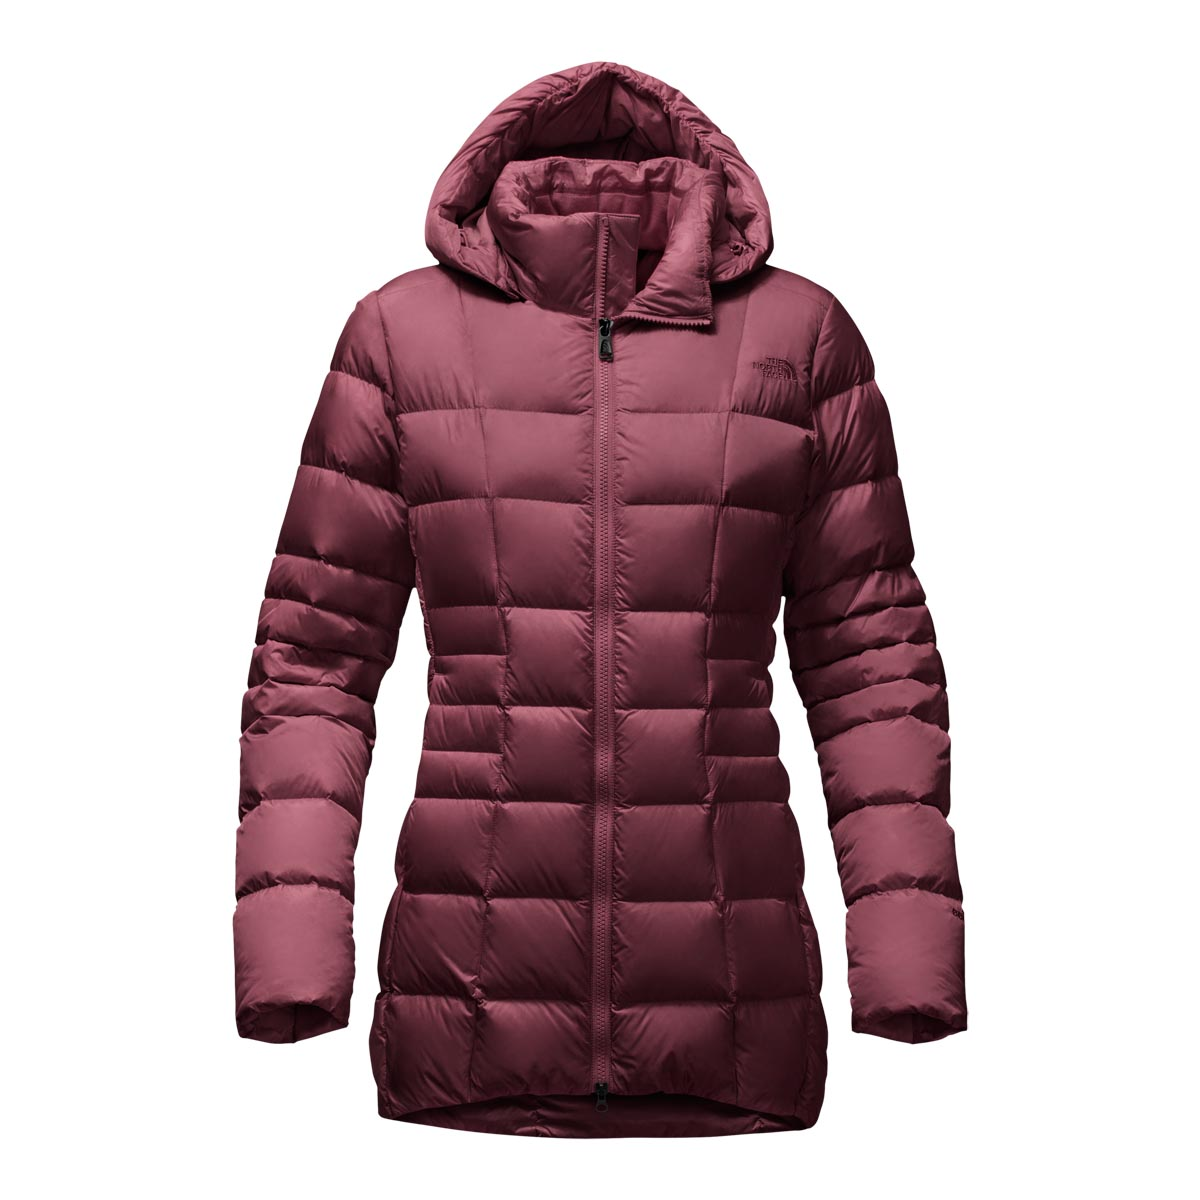 The North Face Women's Transit Jacket II Pricing